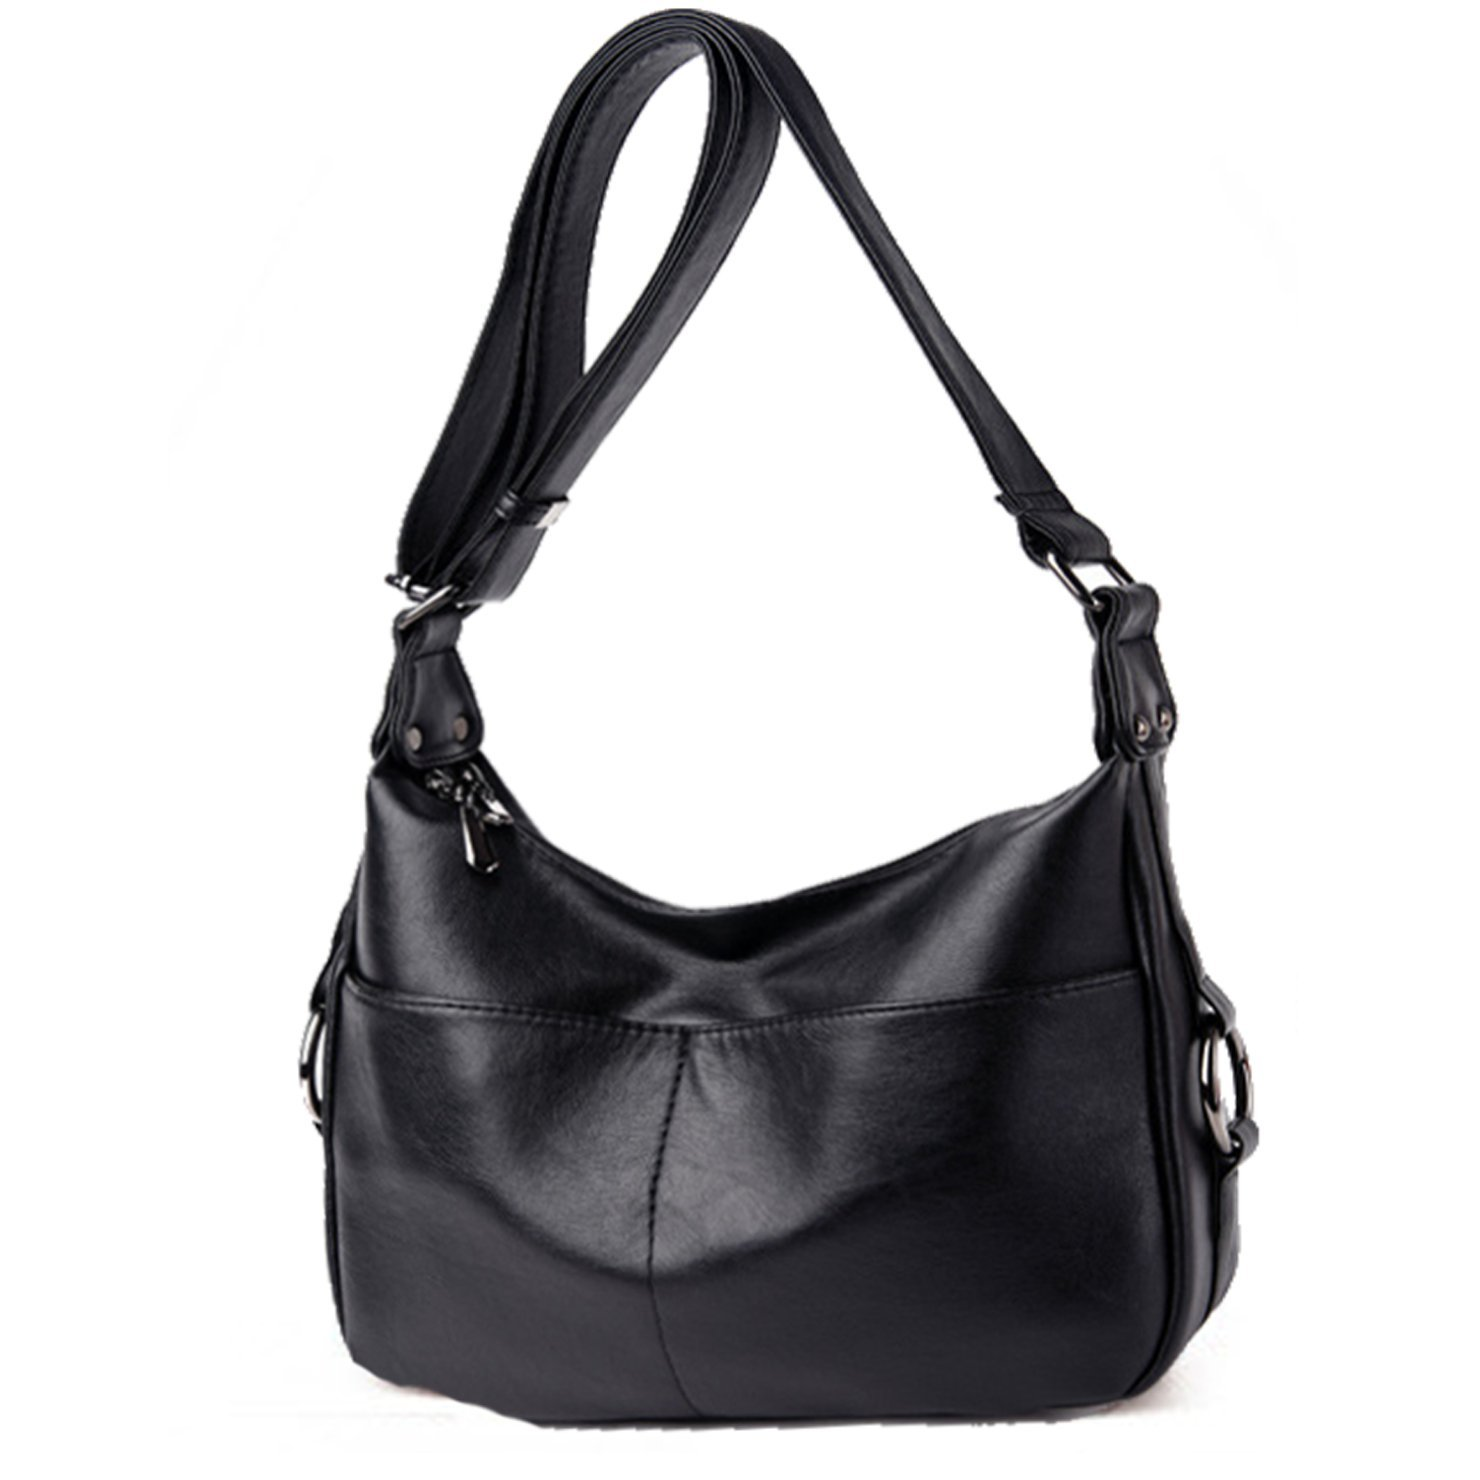 Lustear Ladies Soft Leather Shoulder Bags Hobo Style Bag (Black)